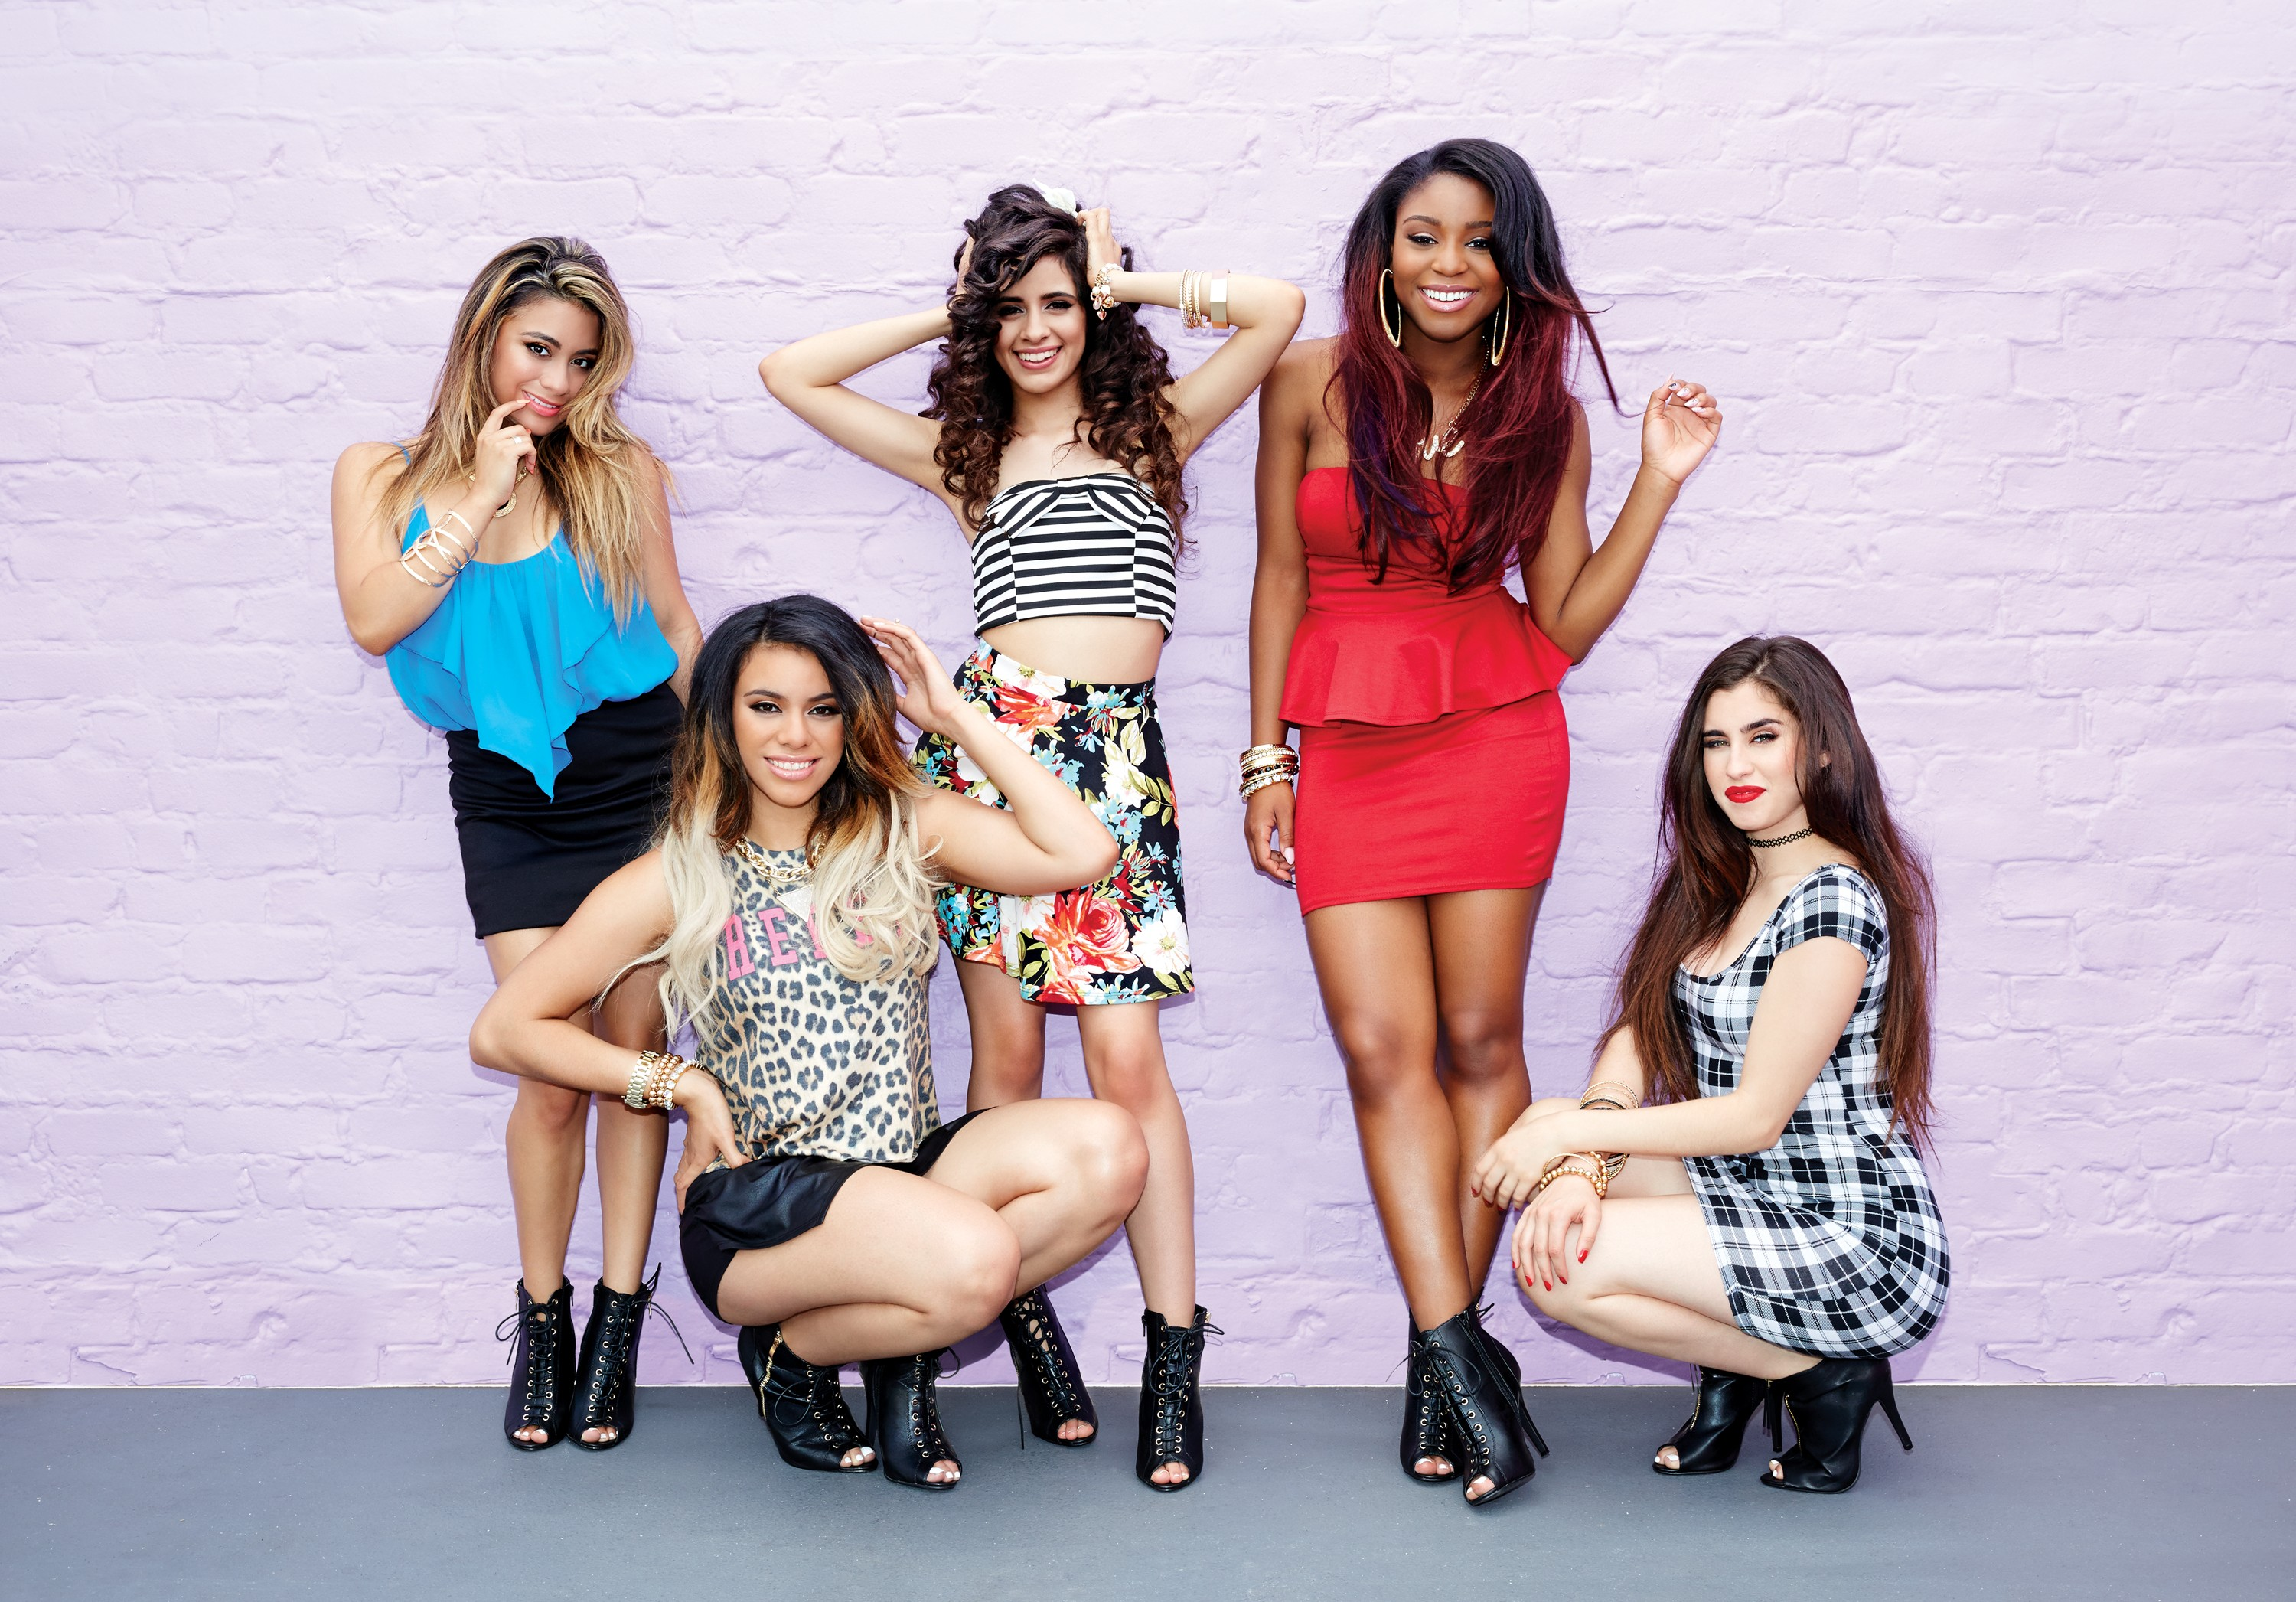 Fifth Harmony Wallpaper, Celebrities / Artists: Fifth Harmony, Top ...